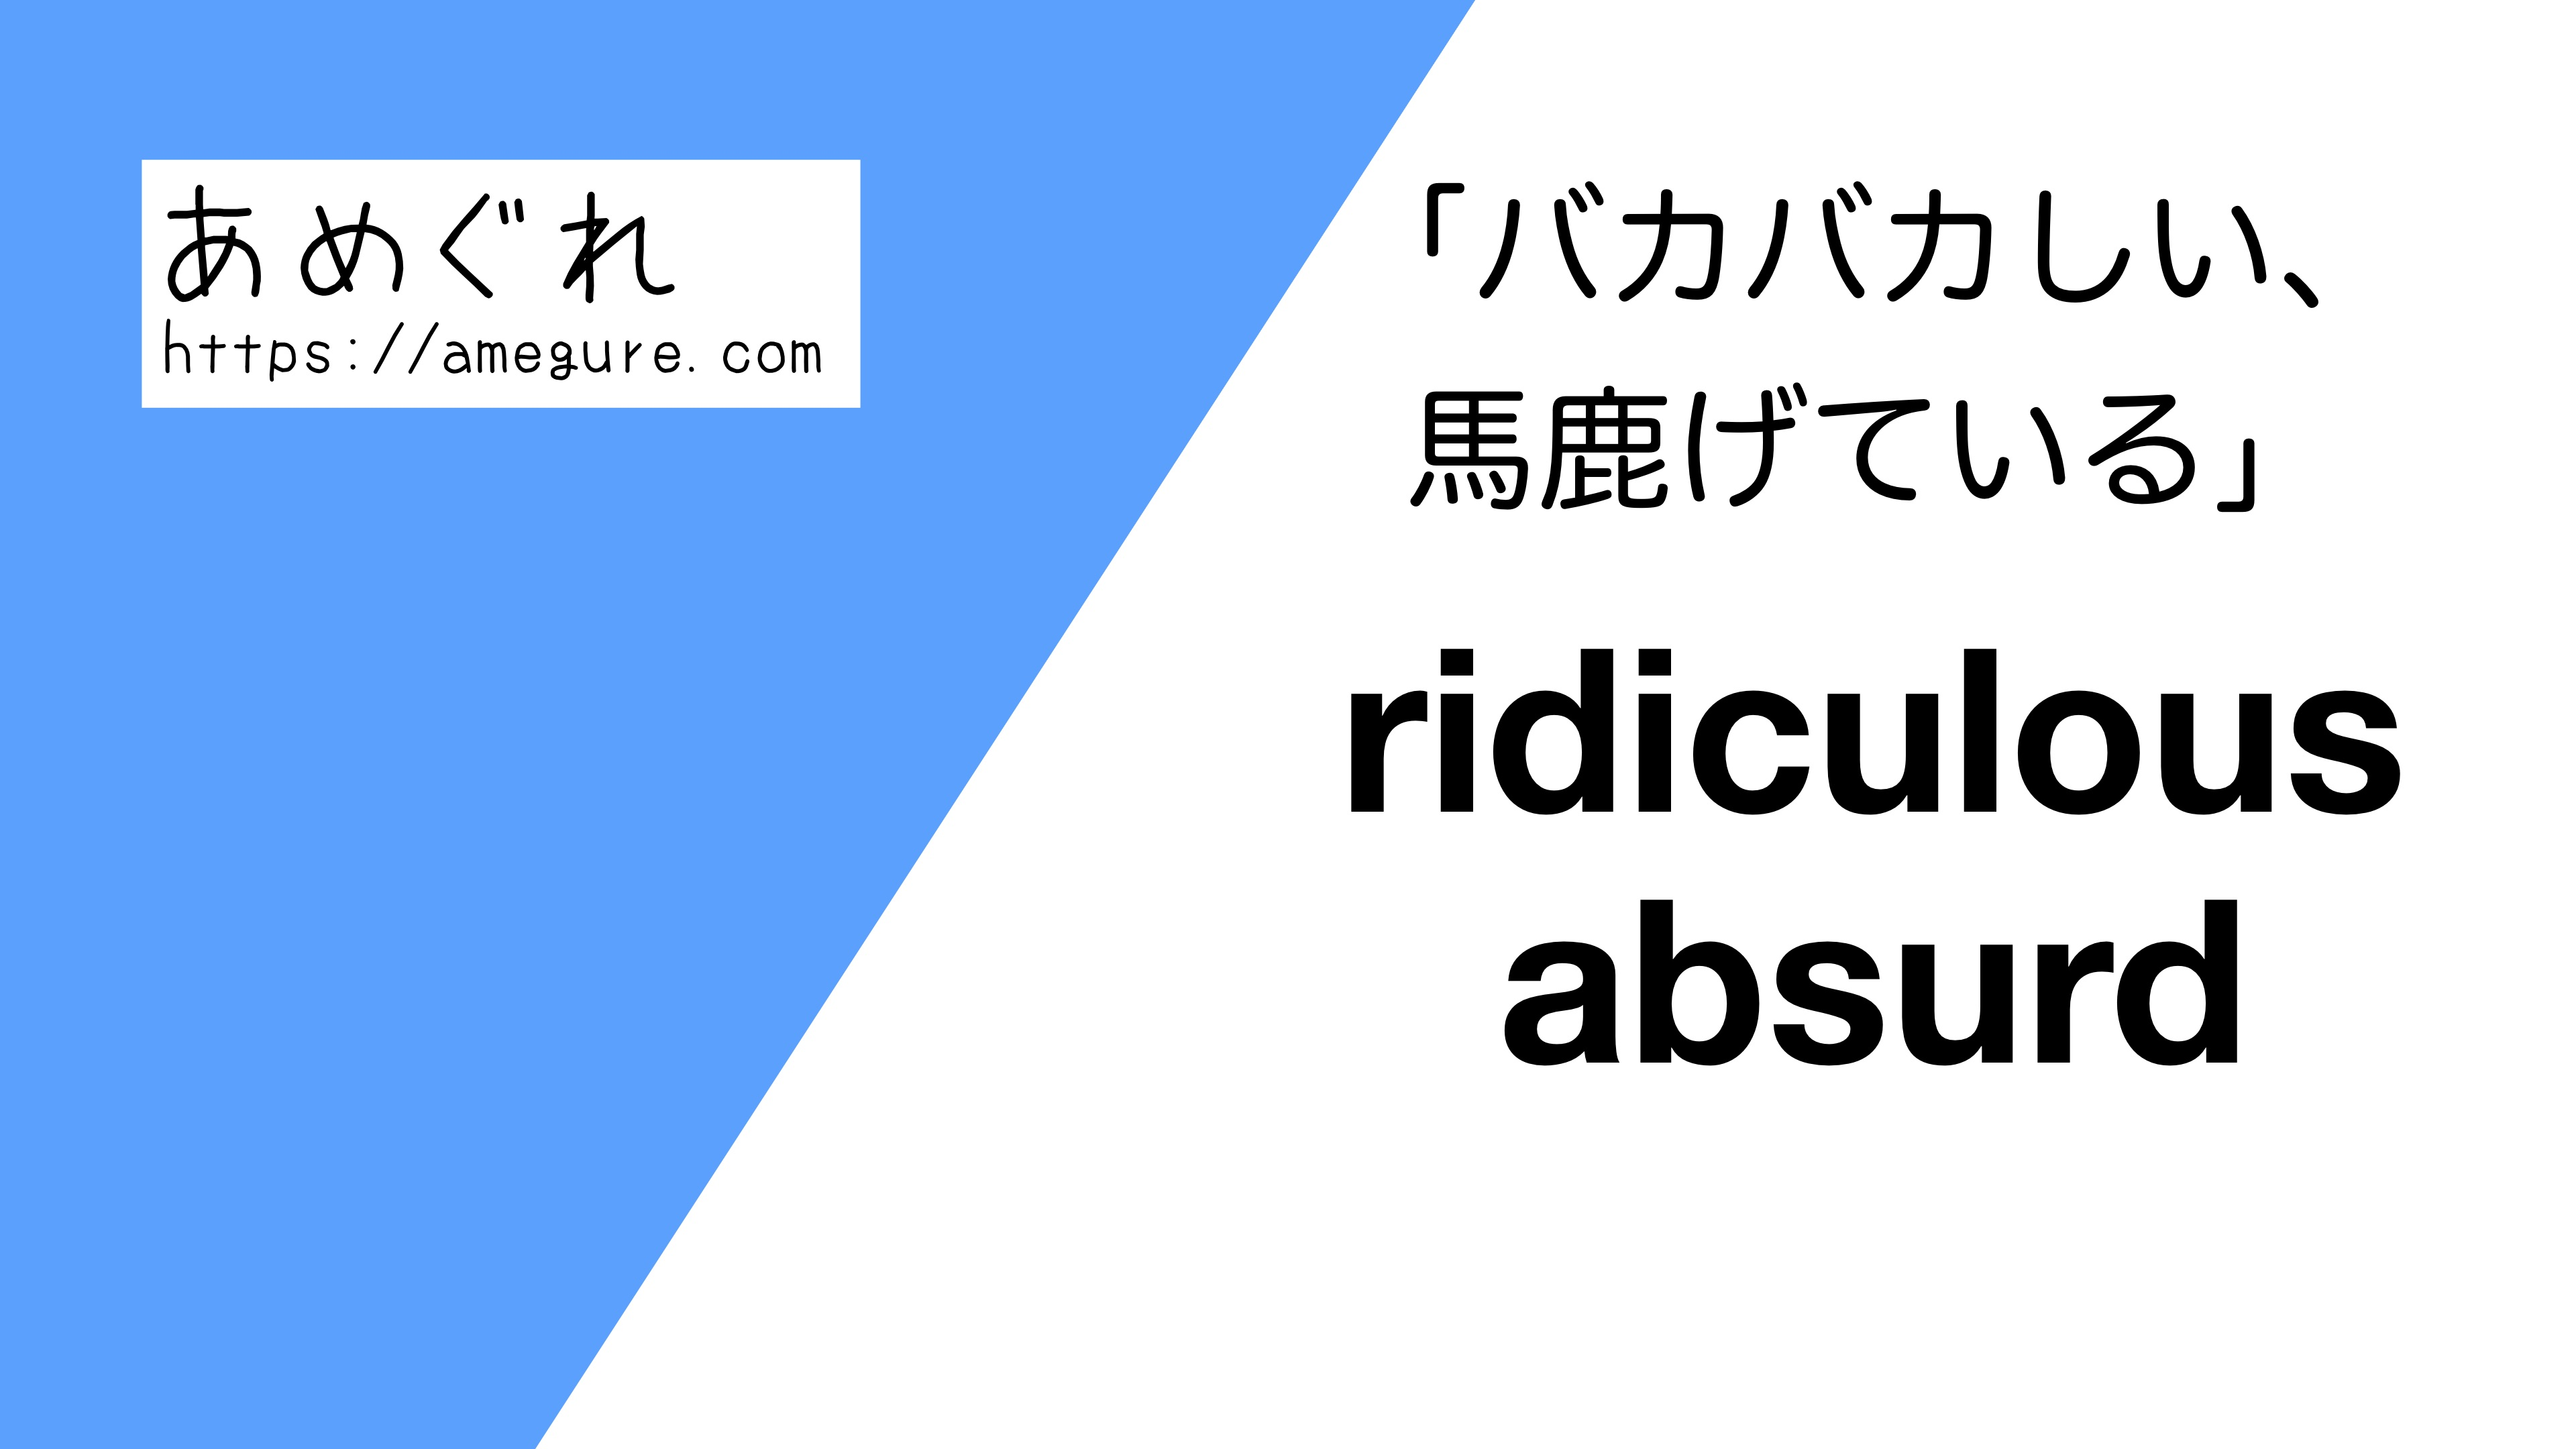 ridiculous-absurd違い